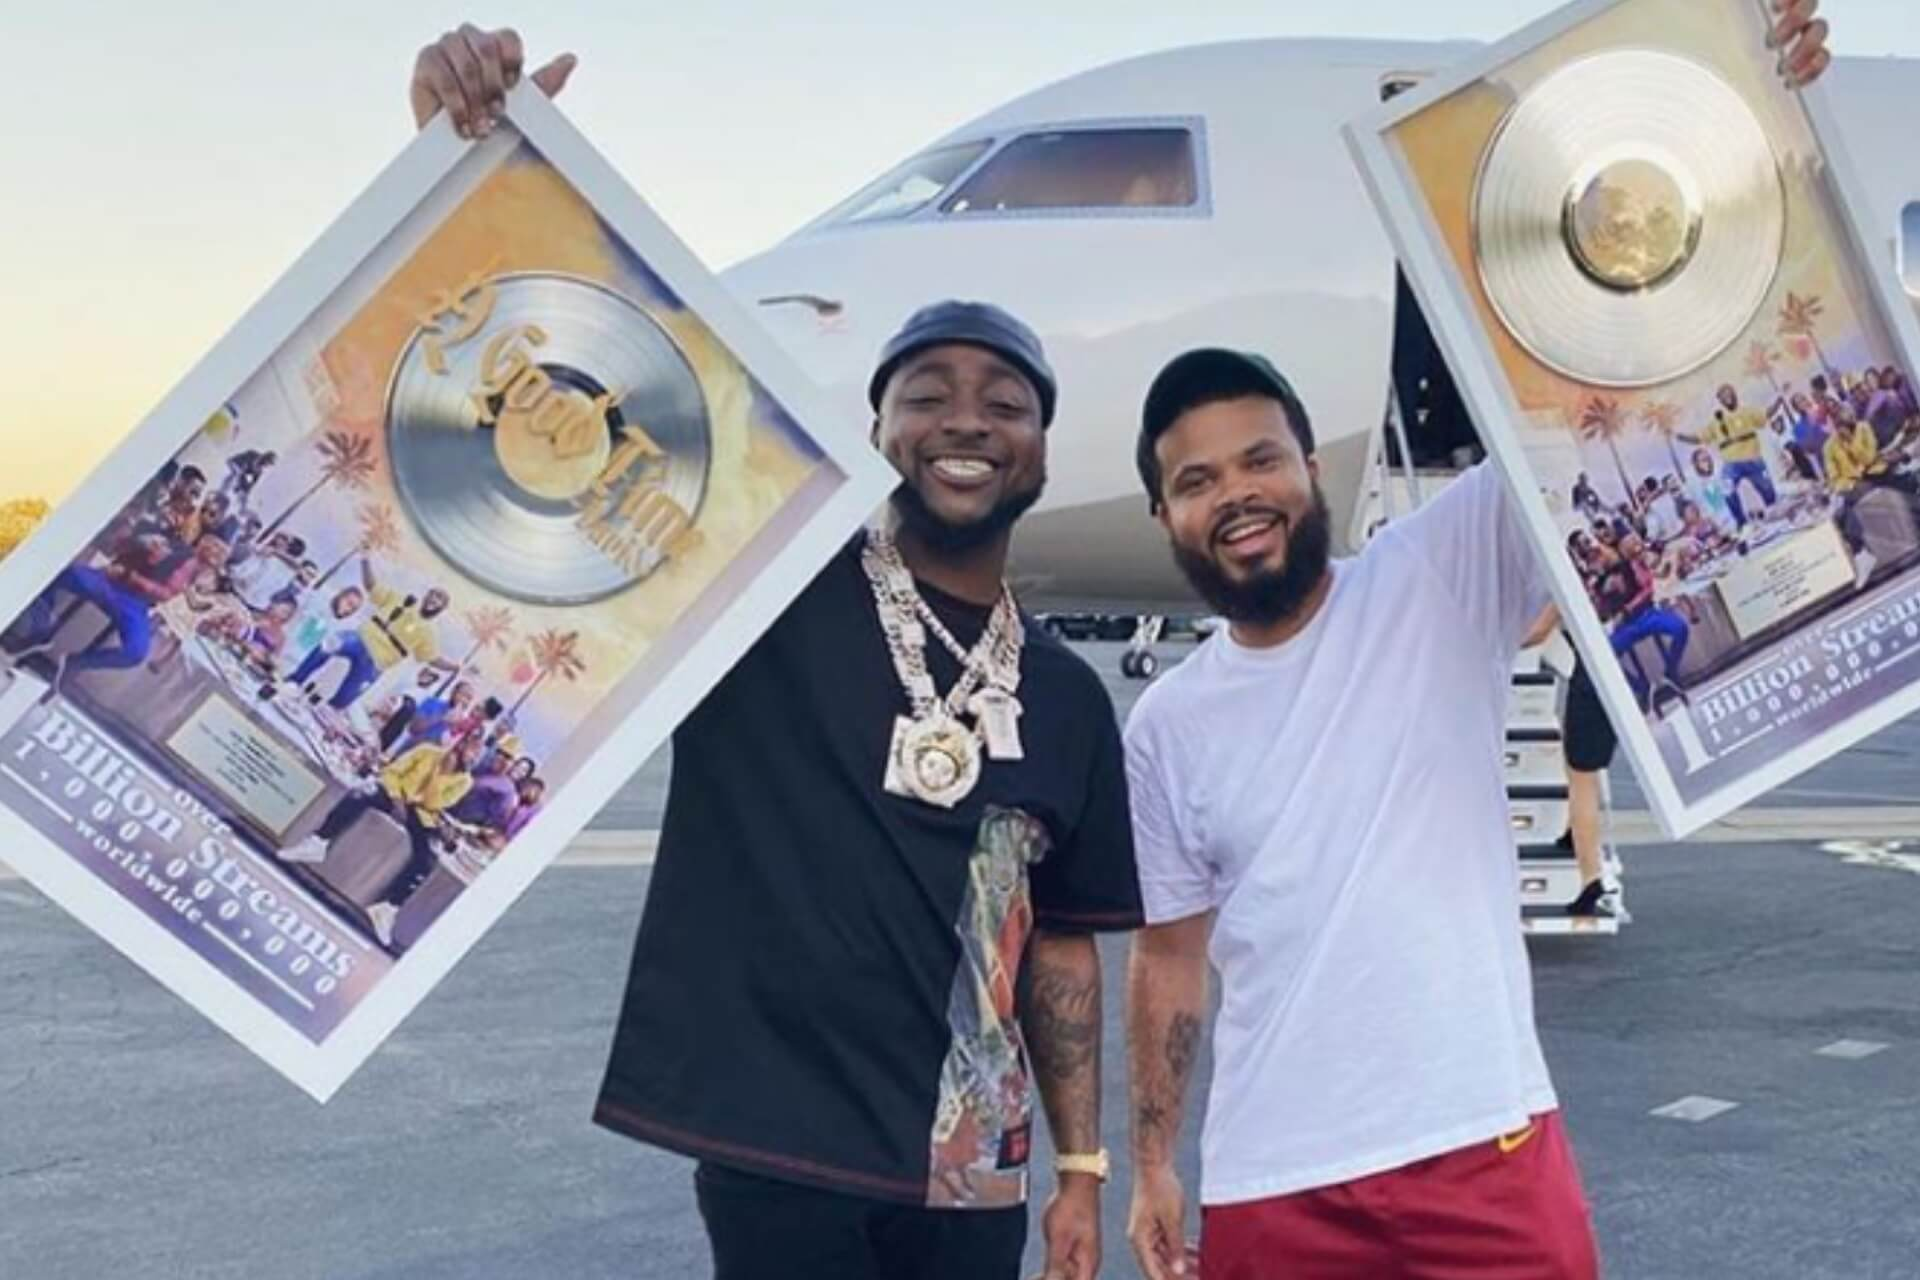 Davido gets plaque from Sony Music over 'A Good Time' album's 1 billion streams worldwide